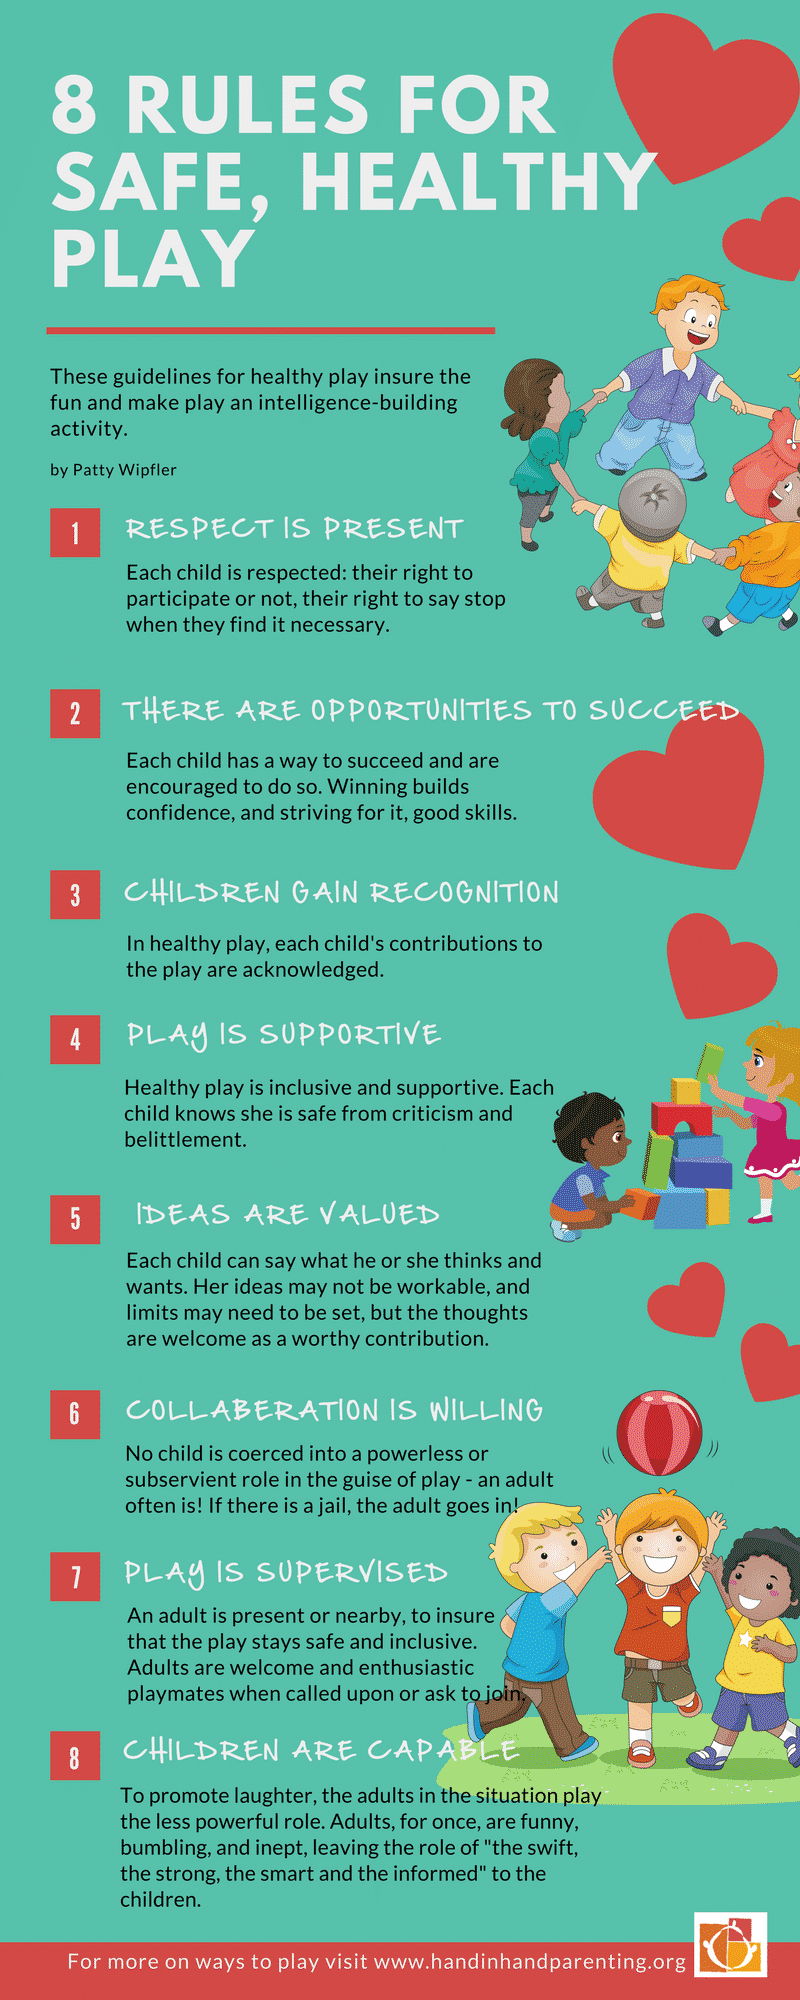 Rules For A Girls Bedroom: 8 Rules For Safe And Healthy Play [Infographic]